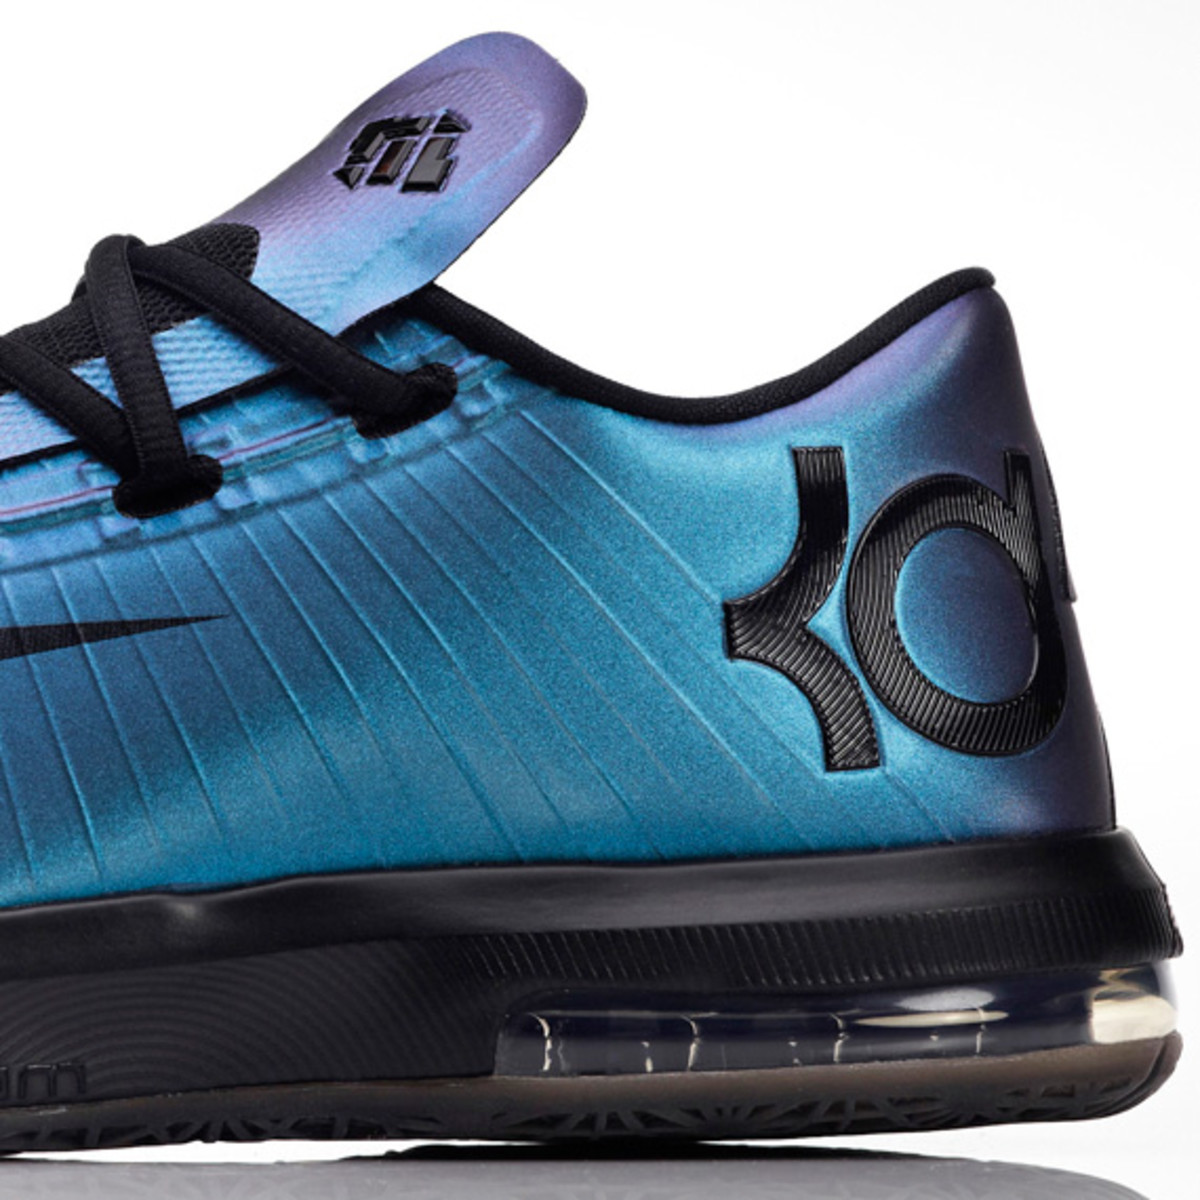 best loved f1a7d bb1fe NIKEiD KD 6 - Chroma Material Design Options